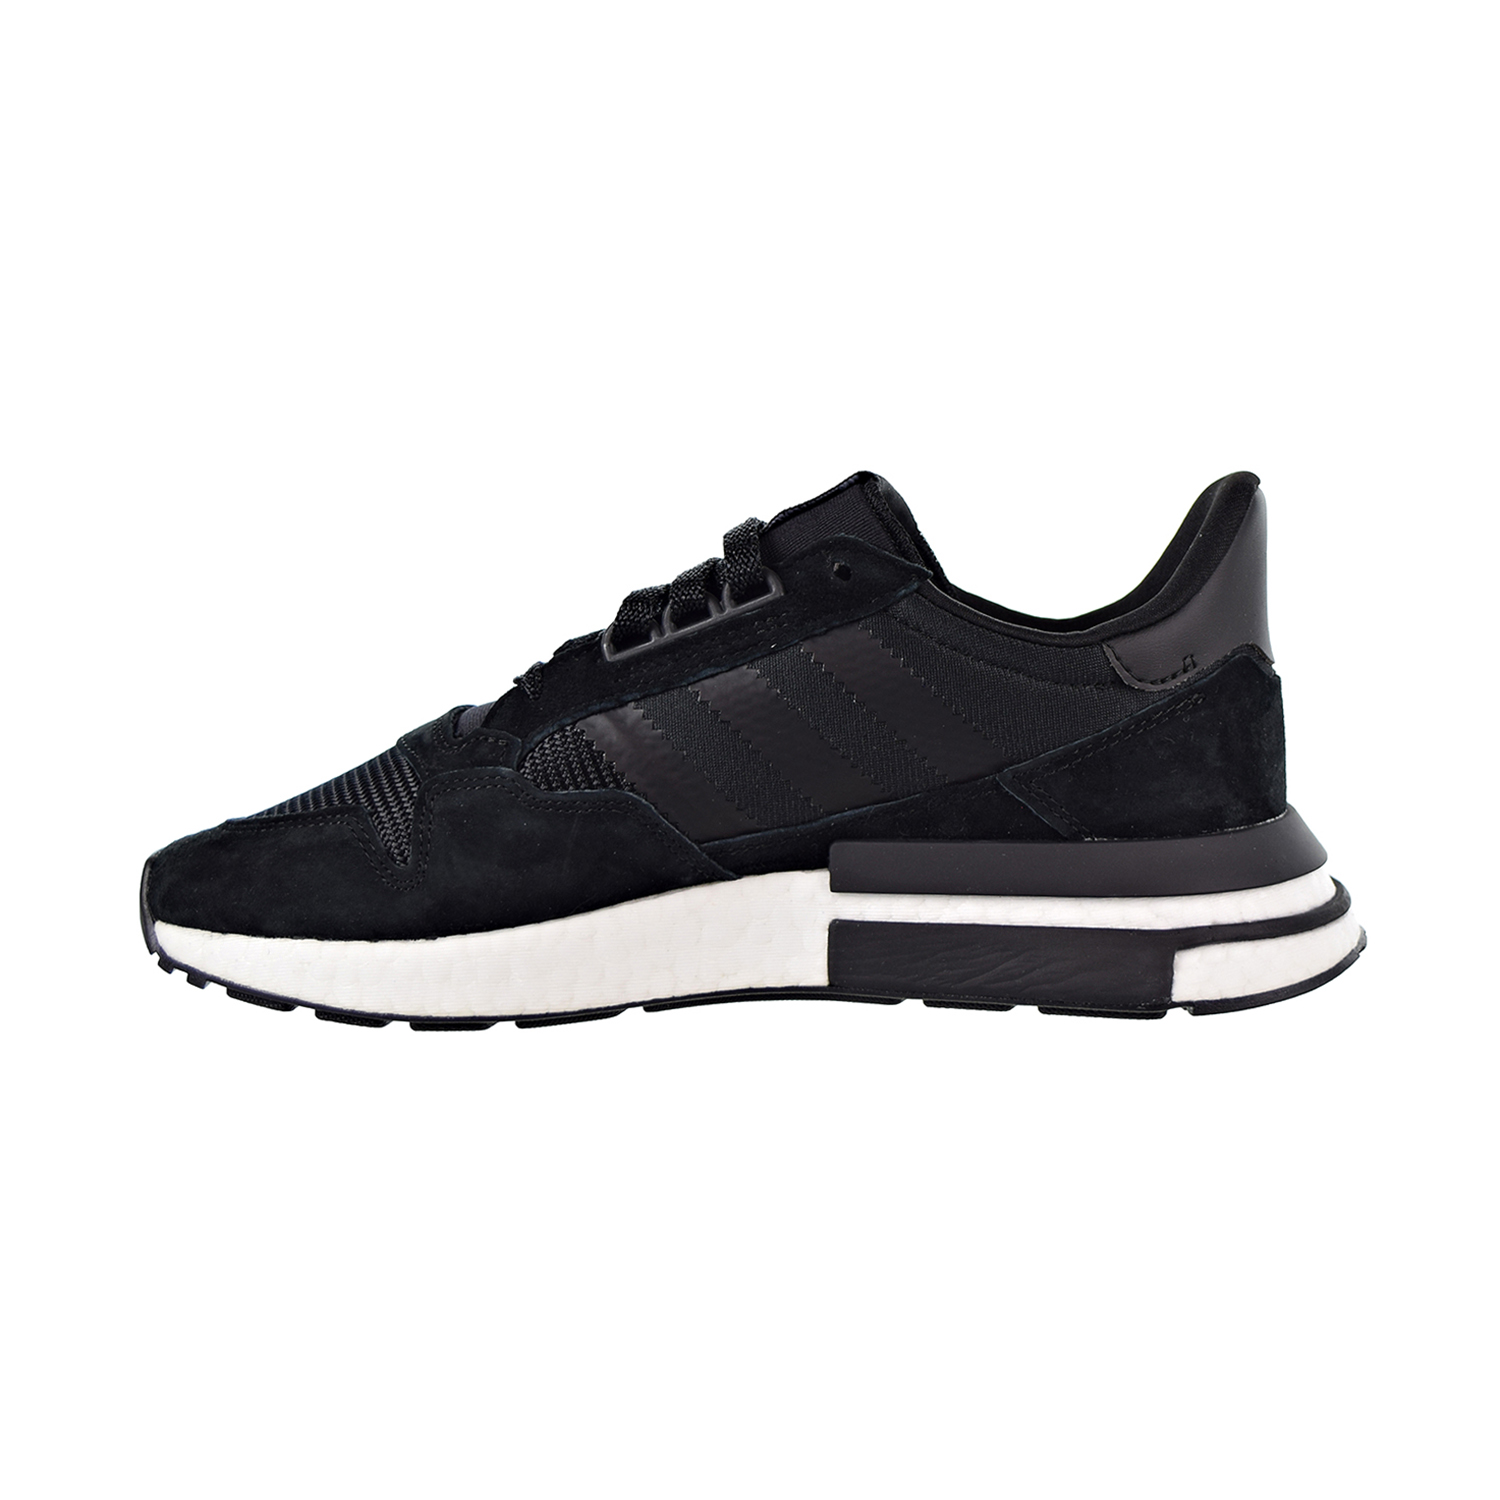 adf77ae81fd Adidas Originals ZX 500 RM Men s Shoes Core Black Cloud White Core Black  b42227